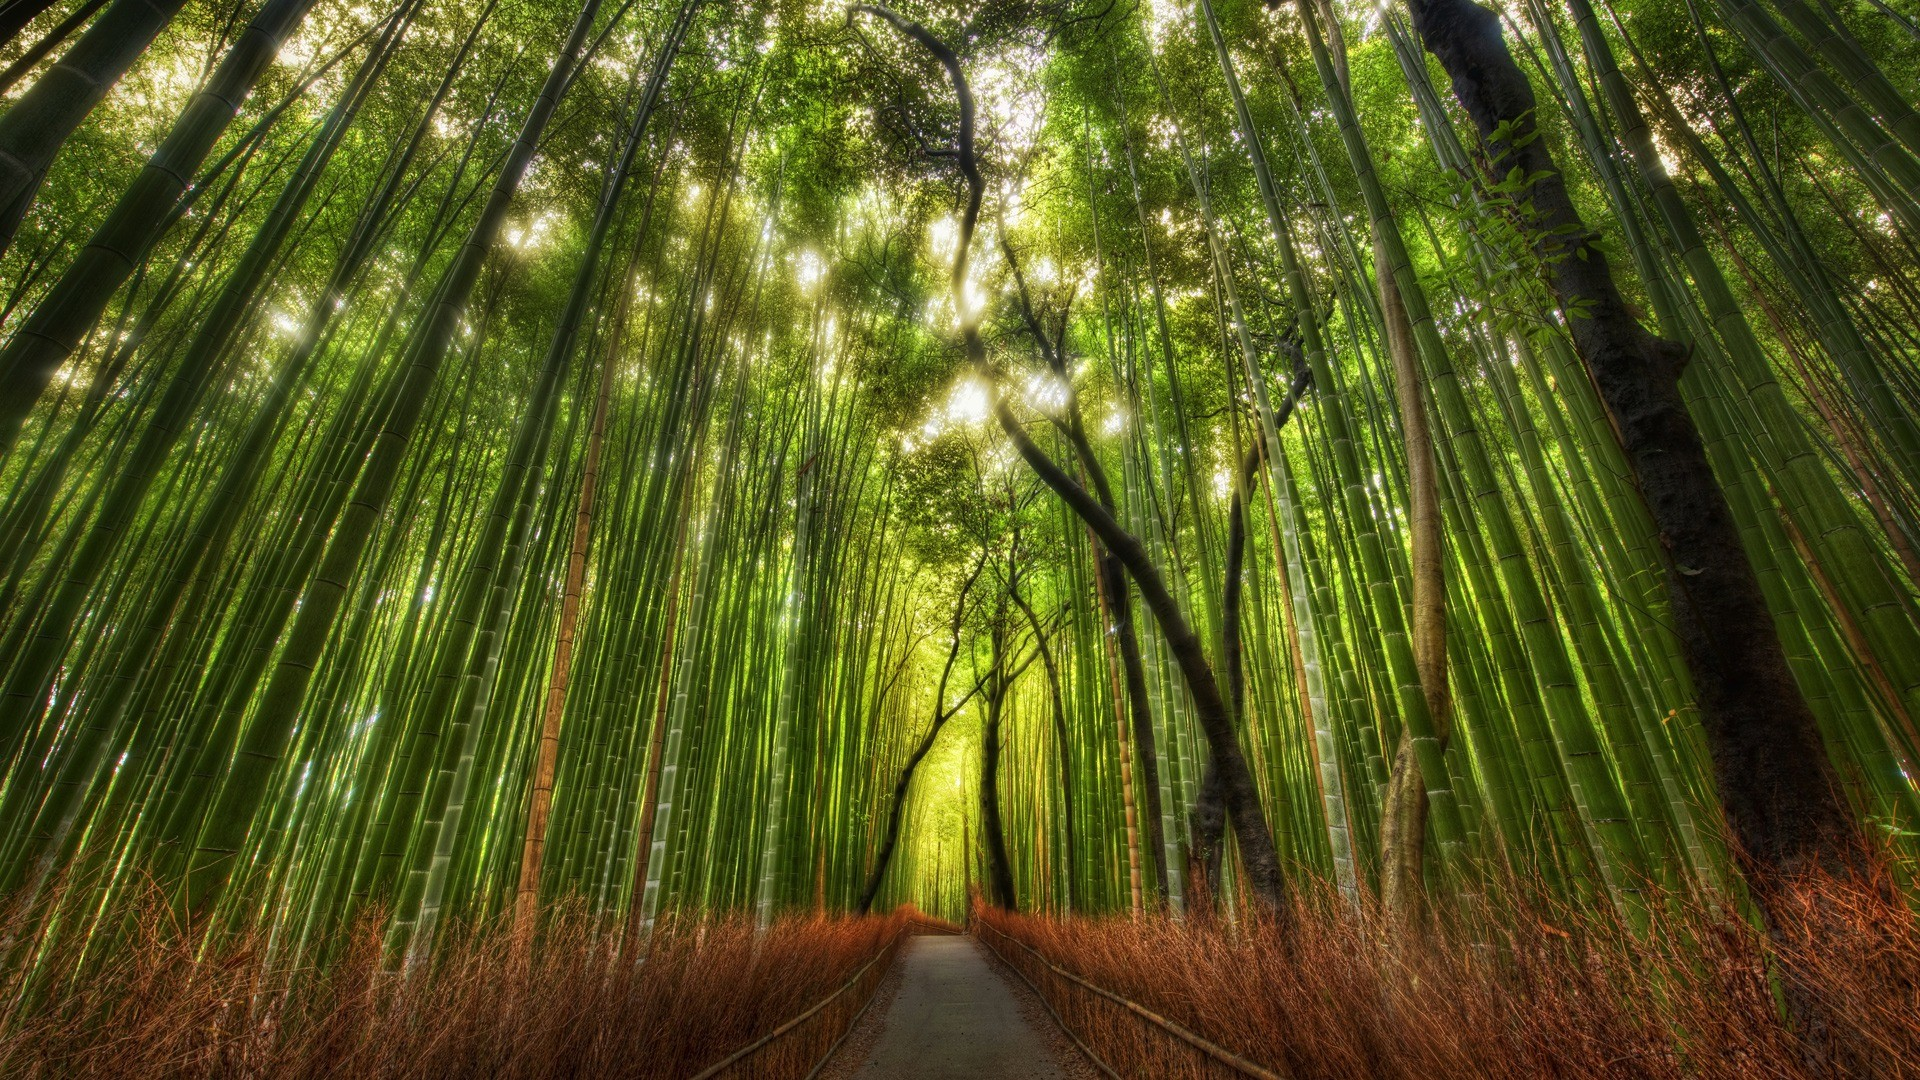 1920x1080 The Bamboo Forest Wallpaper High Dynamic Range Nature Wallpapers